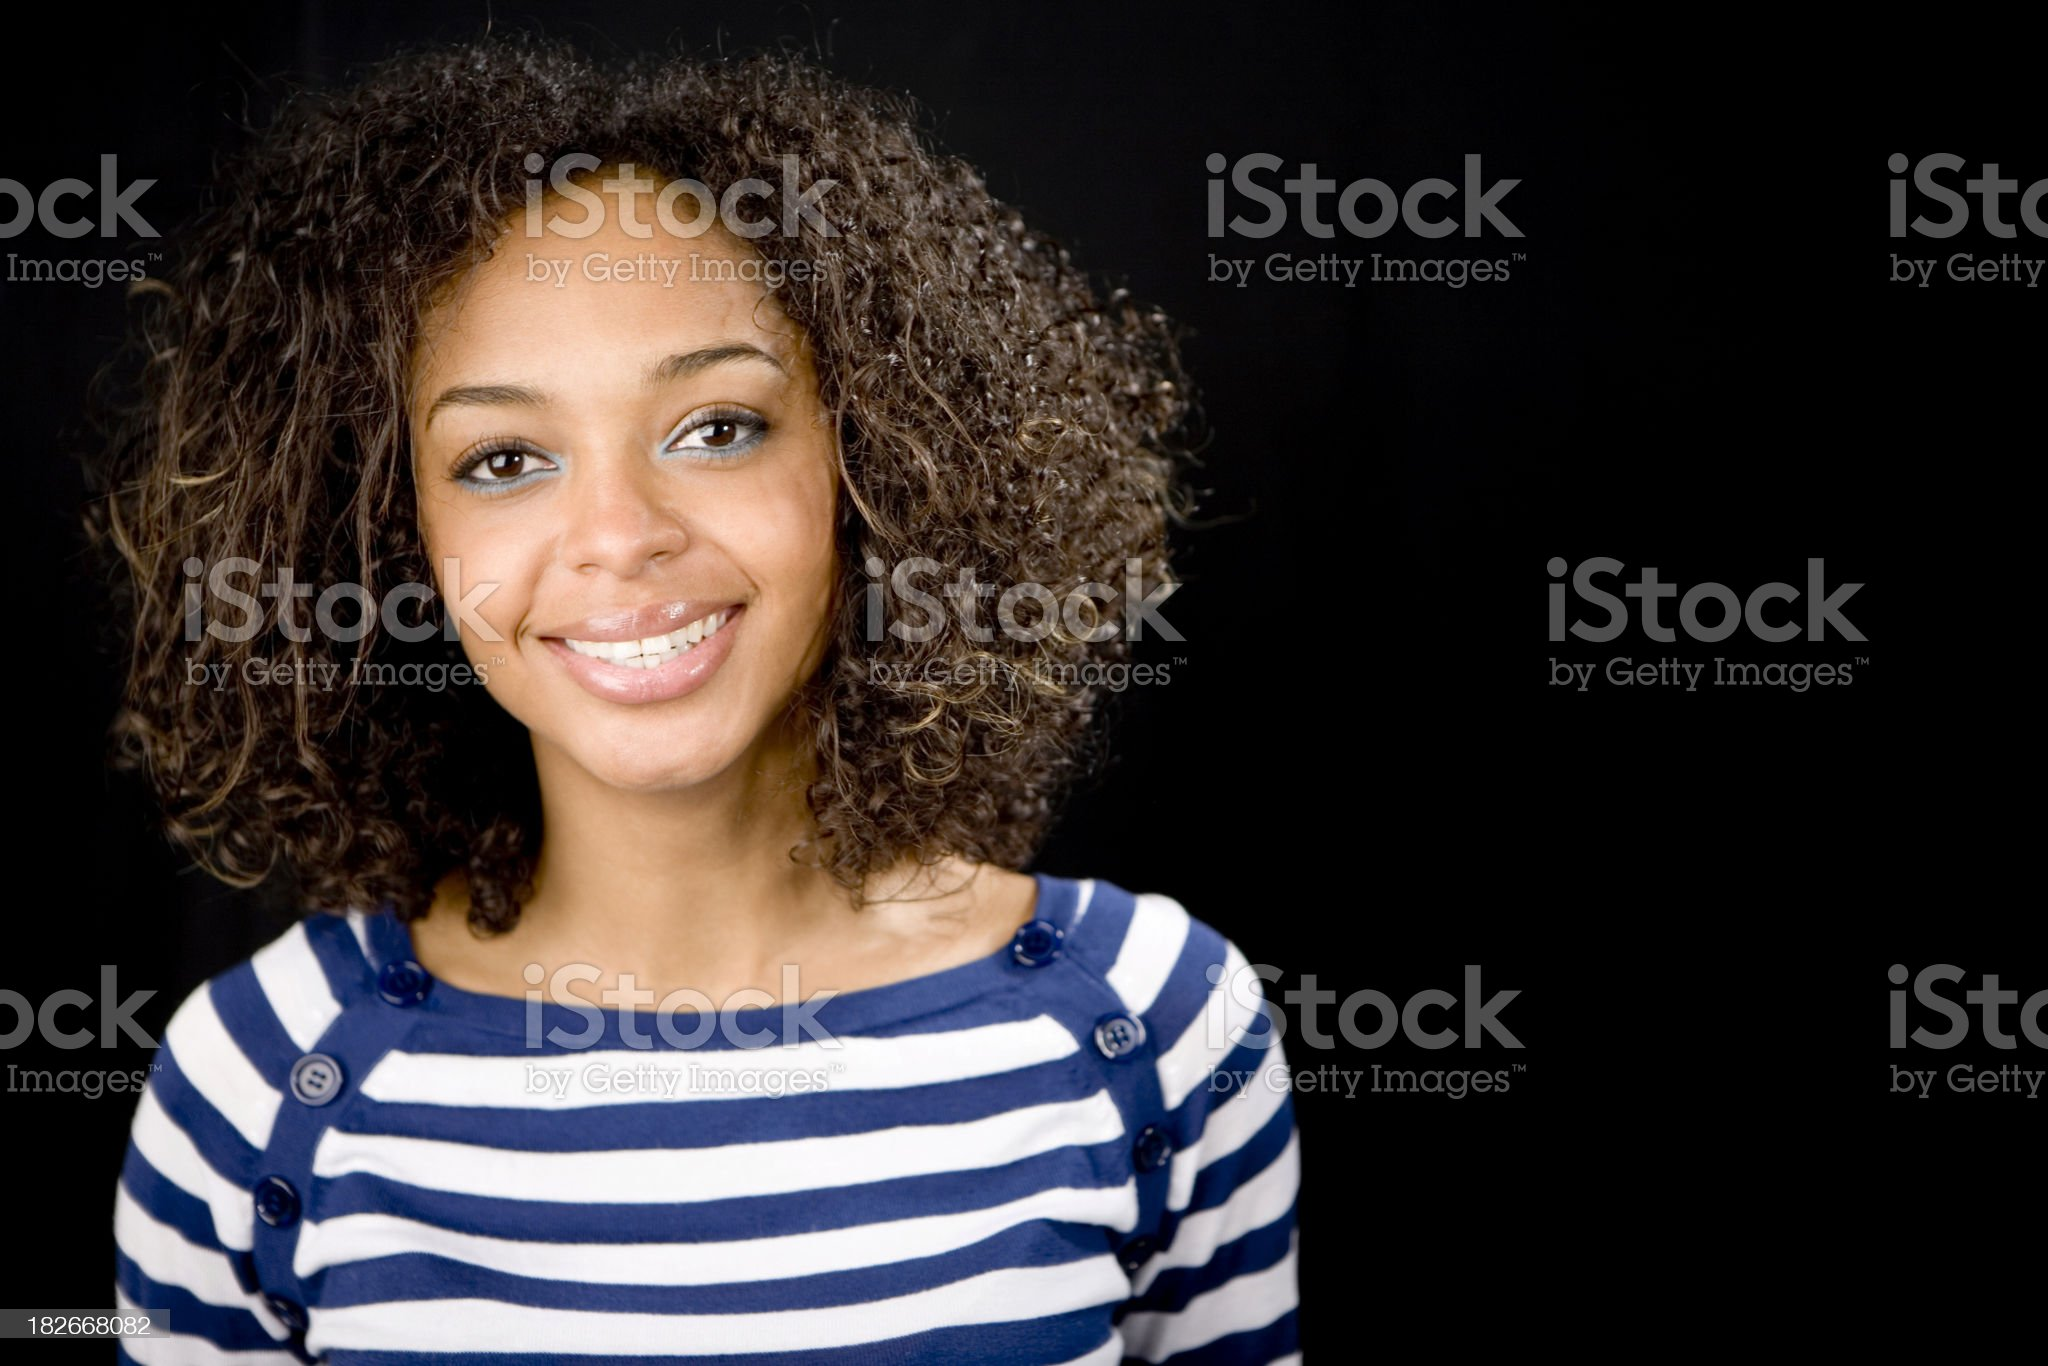 sincere royalty-free stock photo